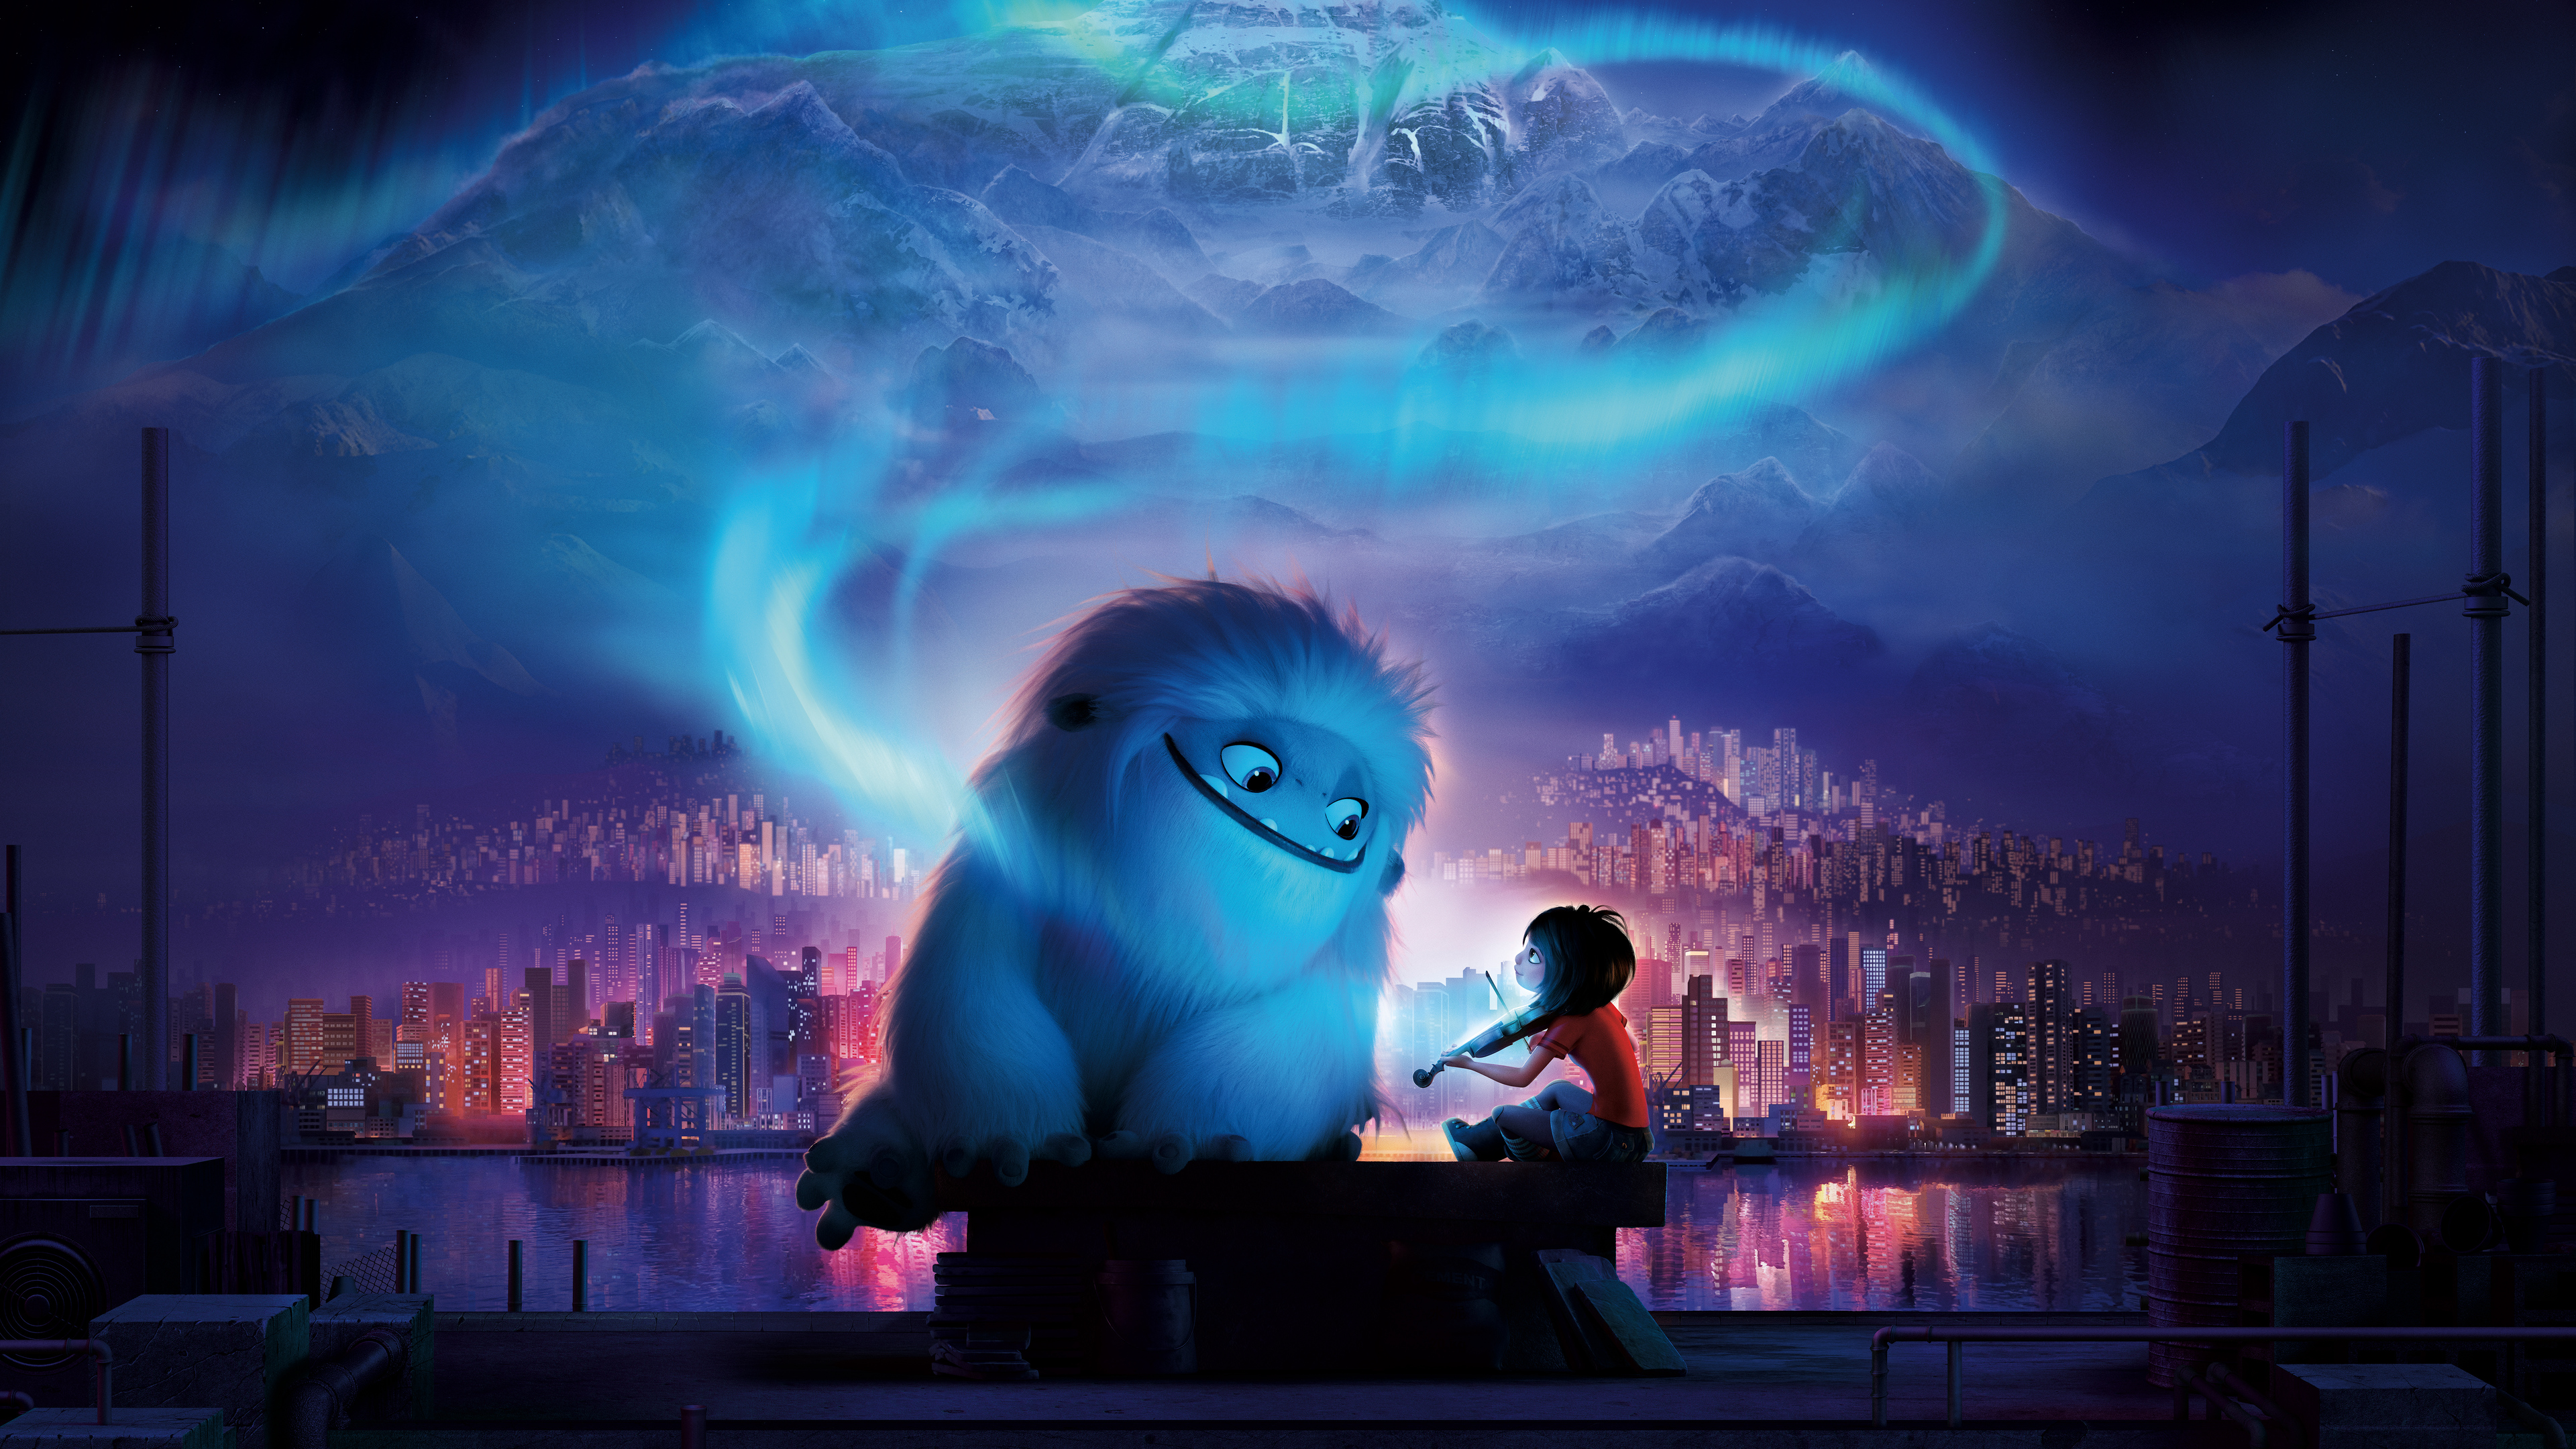 abominable 1569187391 - Abominable - hd-wallpapers, animated movies wallpapers, abominable wallpapers, 8k wallpapers, 5k wallpapers, 4k-wallpapers, 2019 movies wallpapers